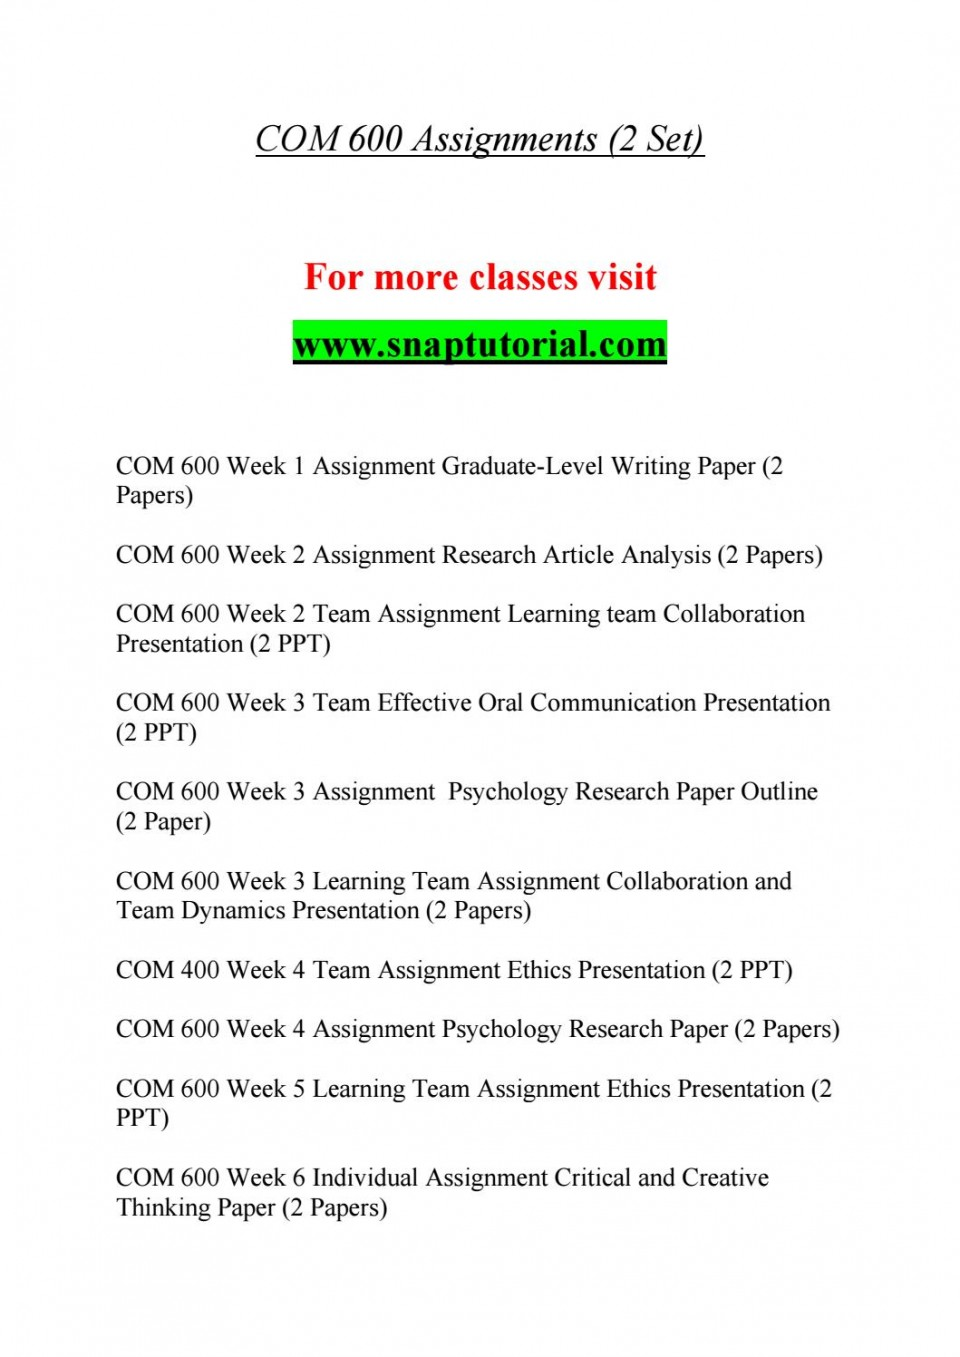 010 Research Paper Psychology Outline Com Page 1 Striking 600 Com/600 960